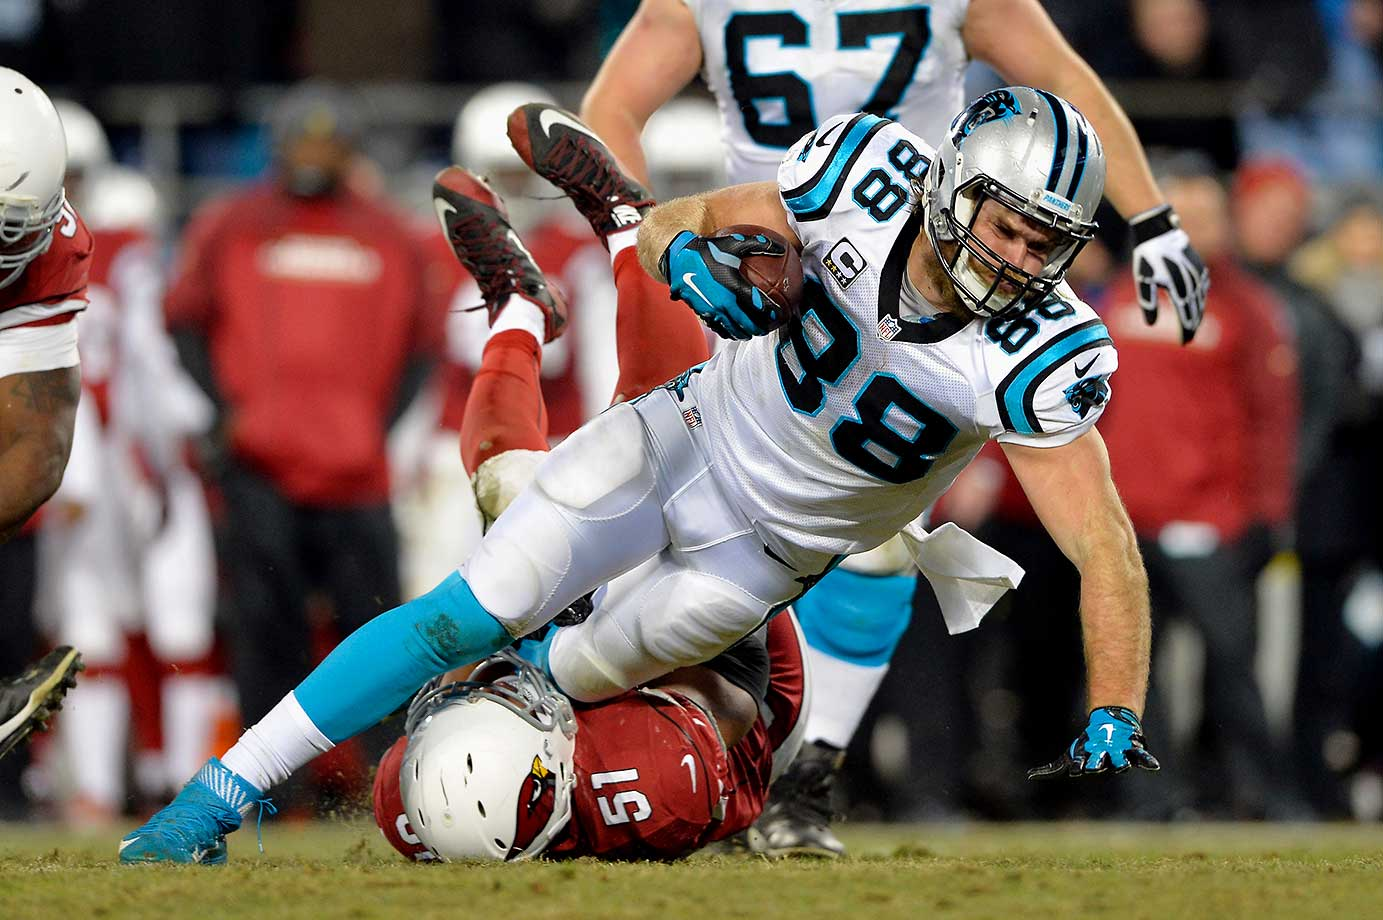 Greg Olsen gets pulled down by Kevin Minter but not after picking up some key yardage.